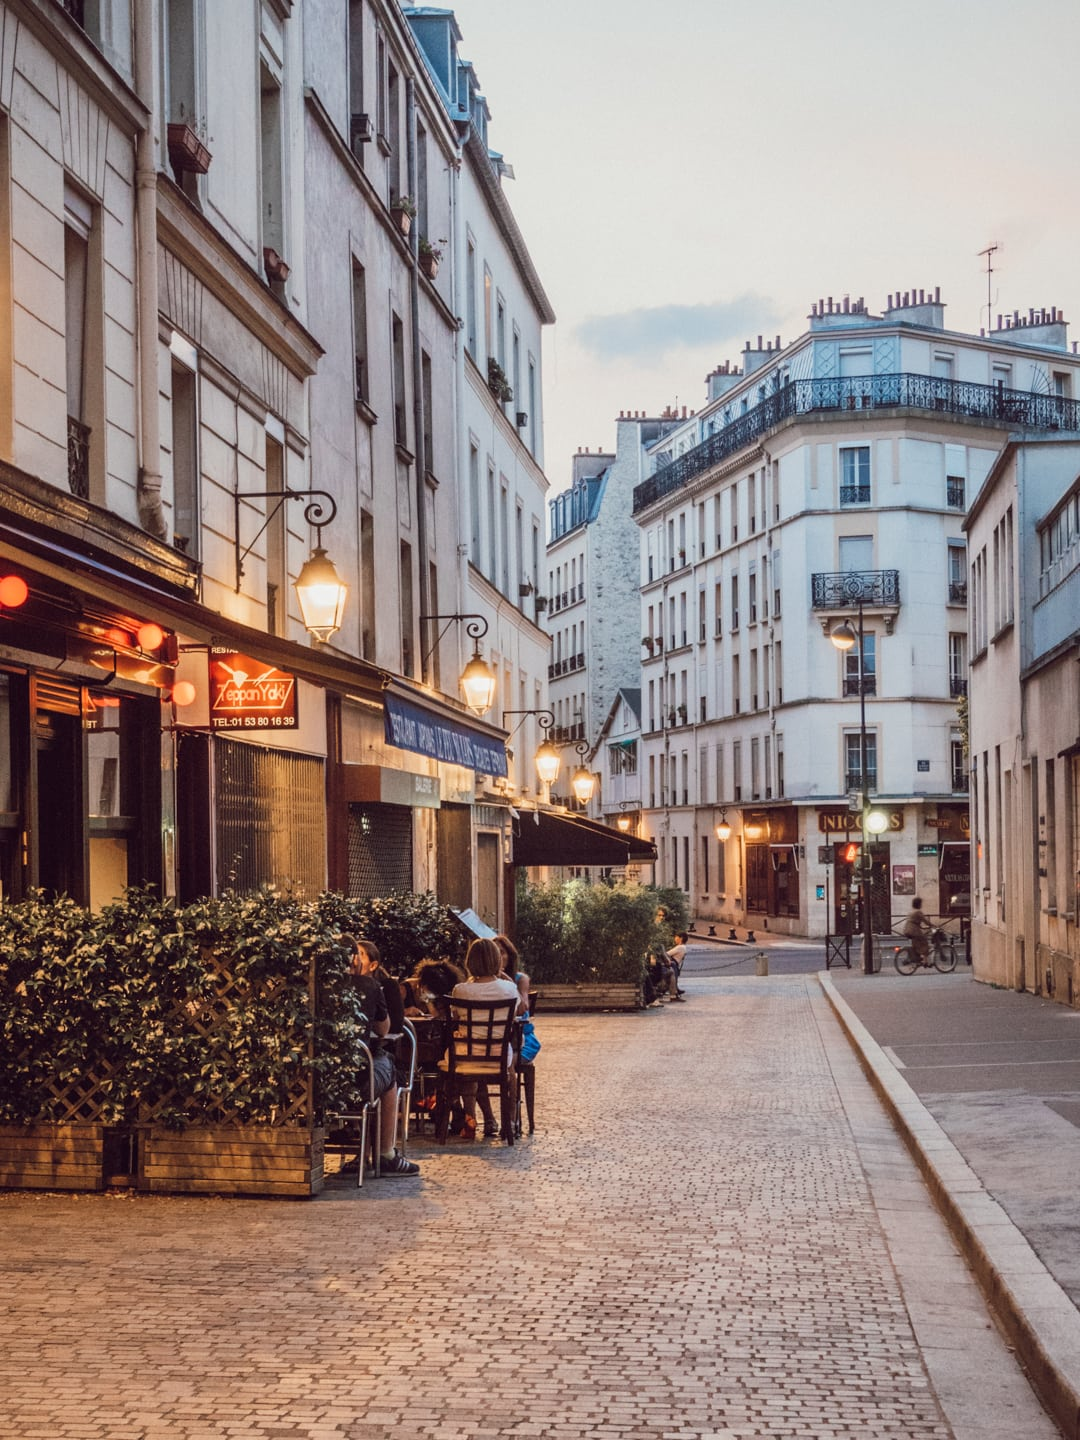 Travel blogger Sarah Kim recommends going to Butte-Aux-Cailles for a non-touristy spot in Paris. | Off the Beaten Path Paris Guide by www.fromlusttilldawn.com